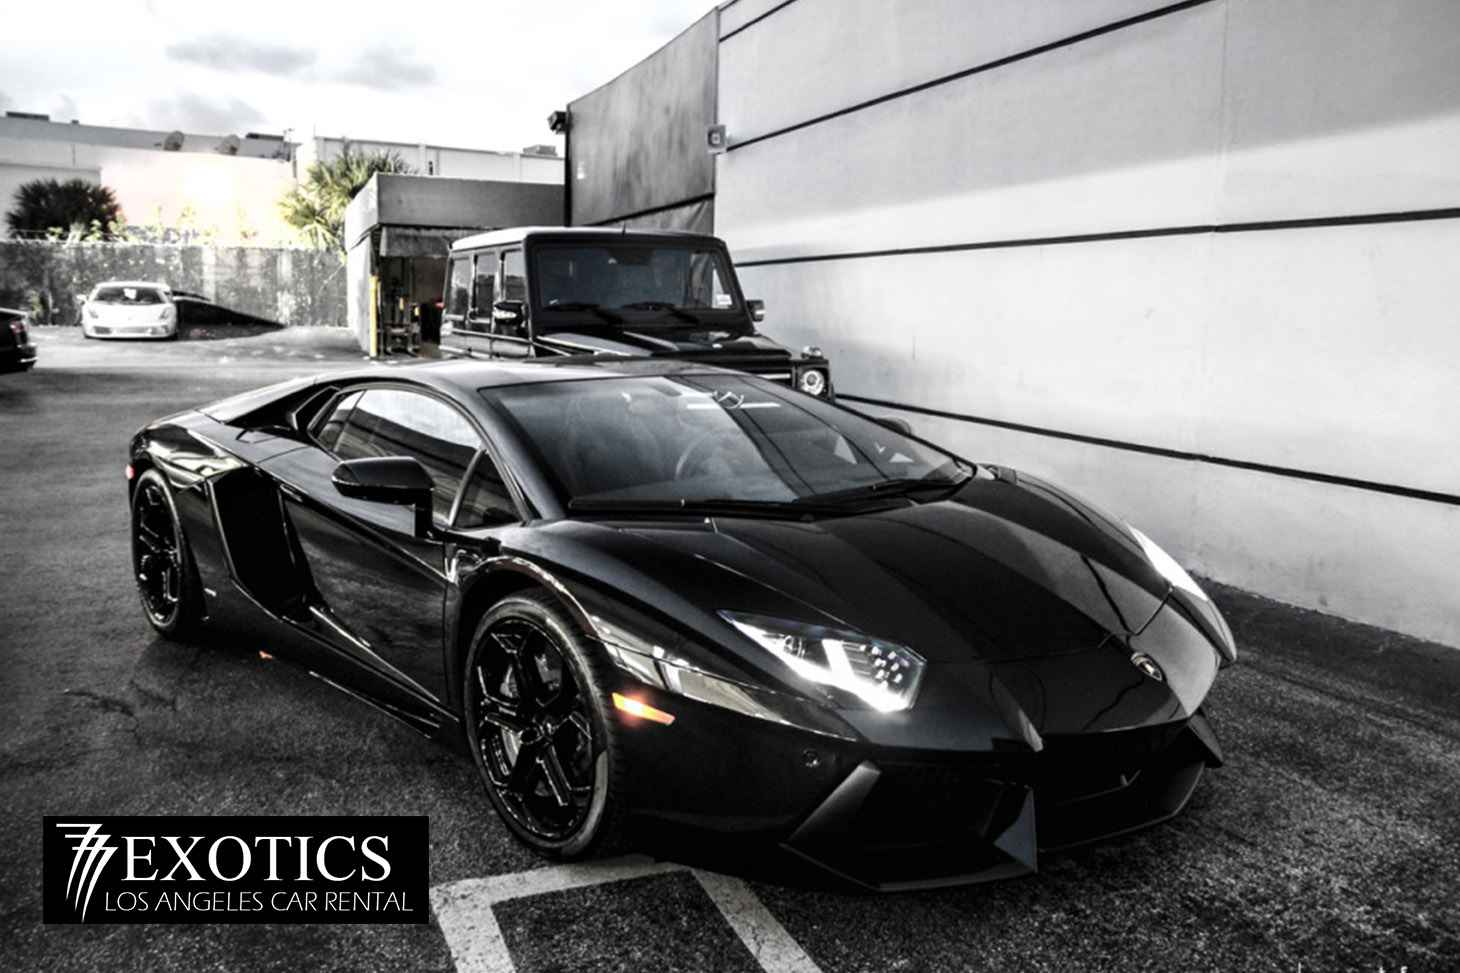 lamborghini aventador rentals los angeles and las vegas. Black Bedroom Furniture Sets. Home Design Ideas